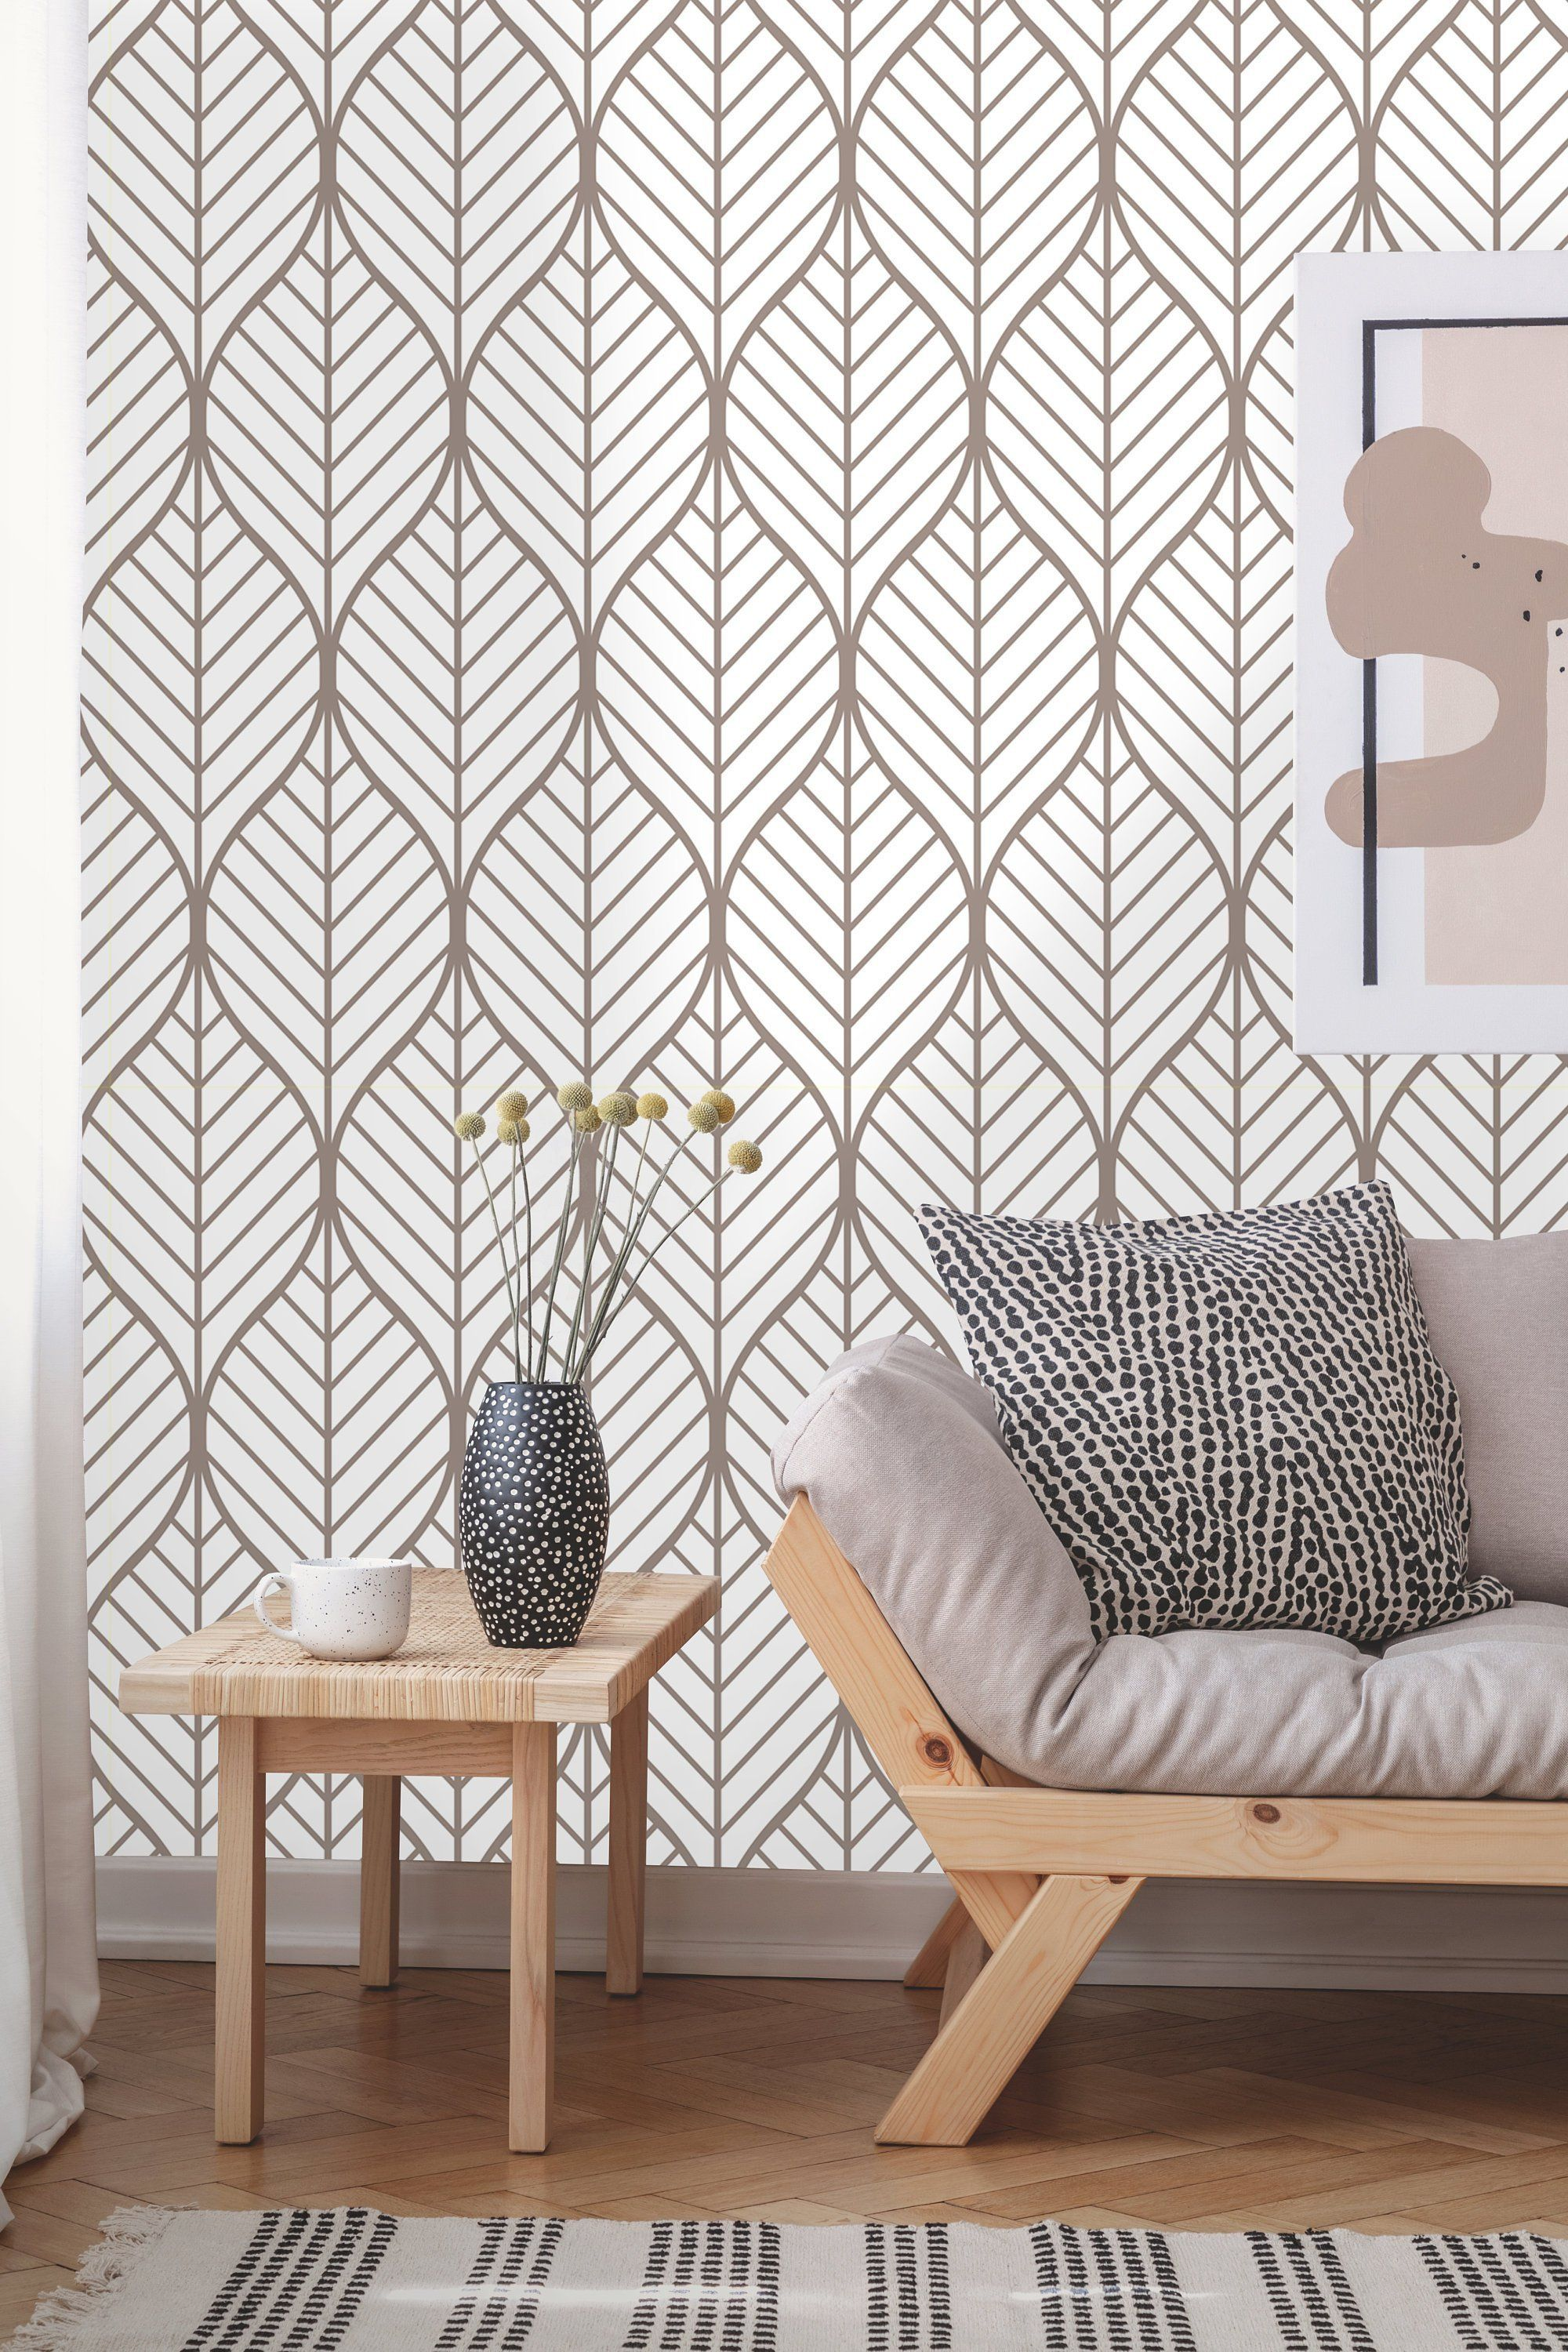 Removable Wallpaper Peel And Stick Geometric Wallpaper Etsy Geometric Wallpaper Simple Decor Removable Wallpaper